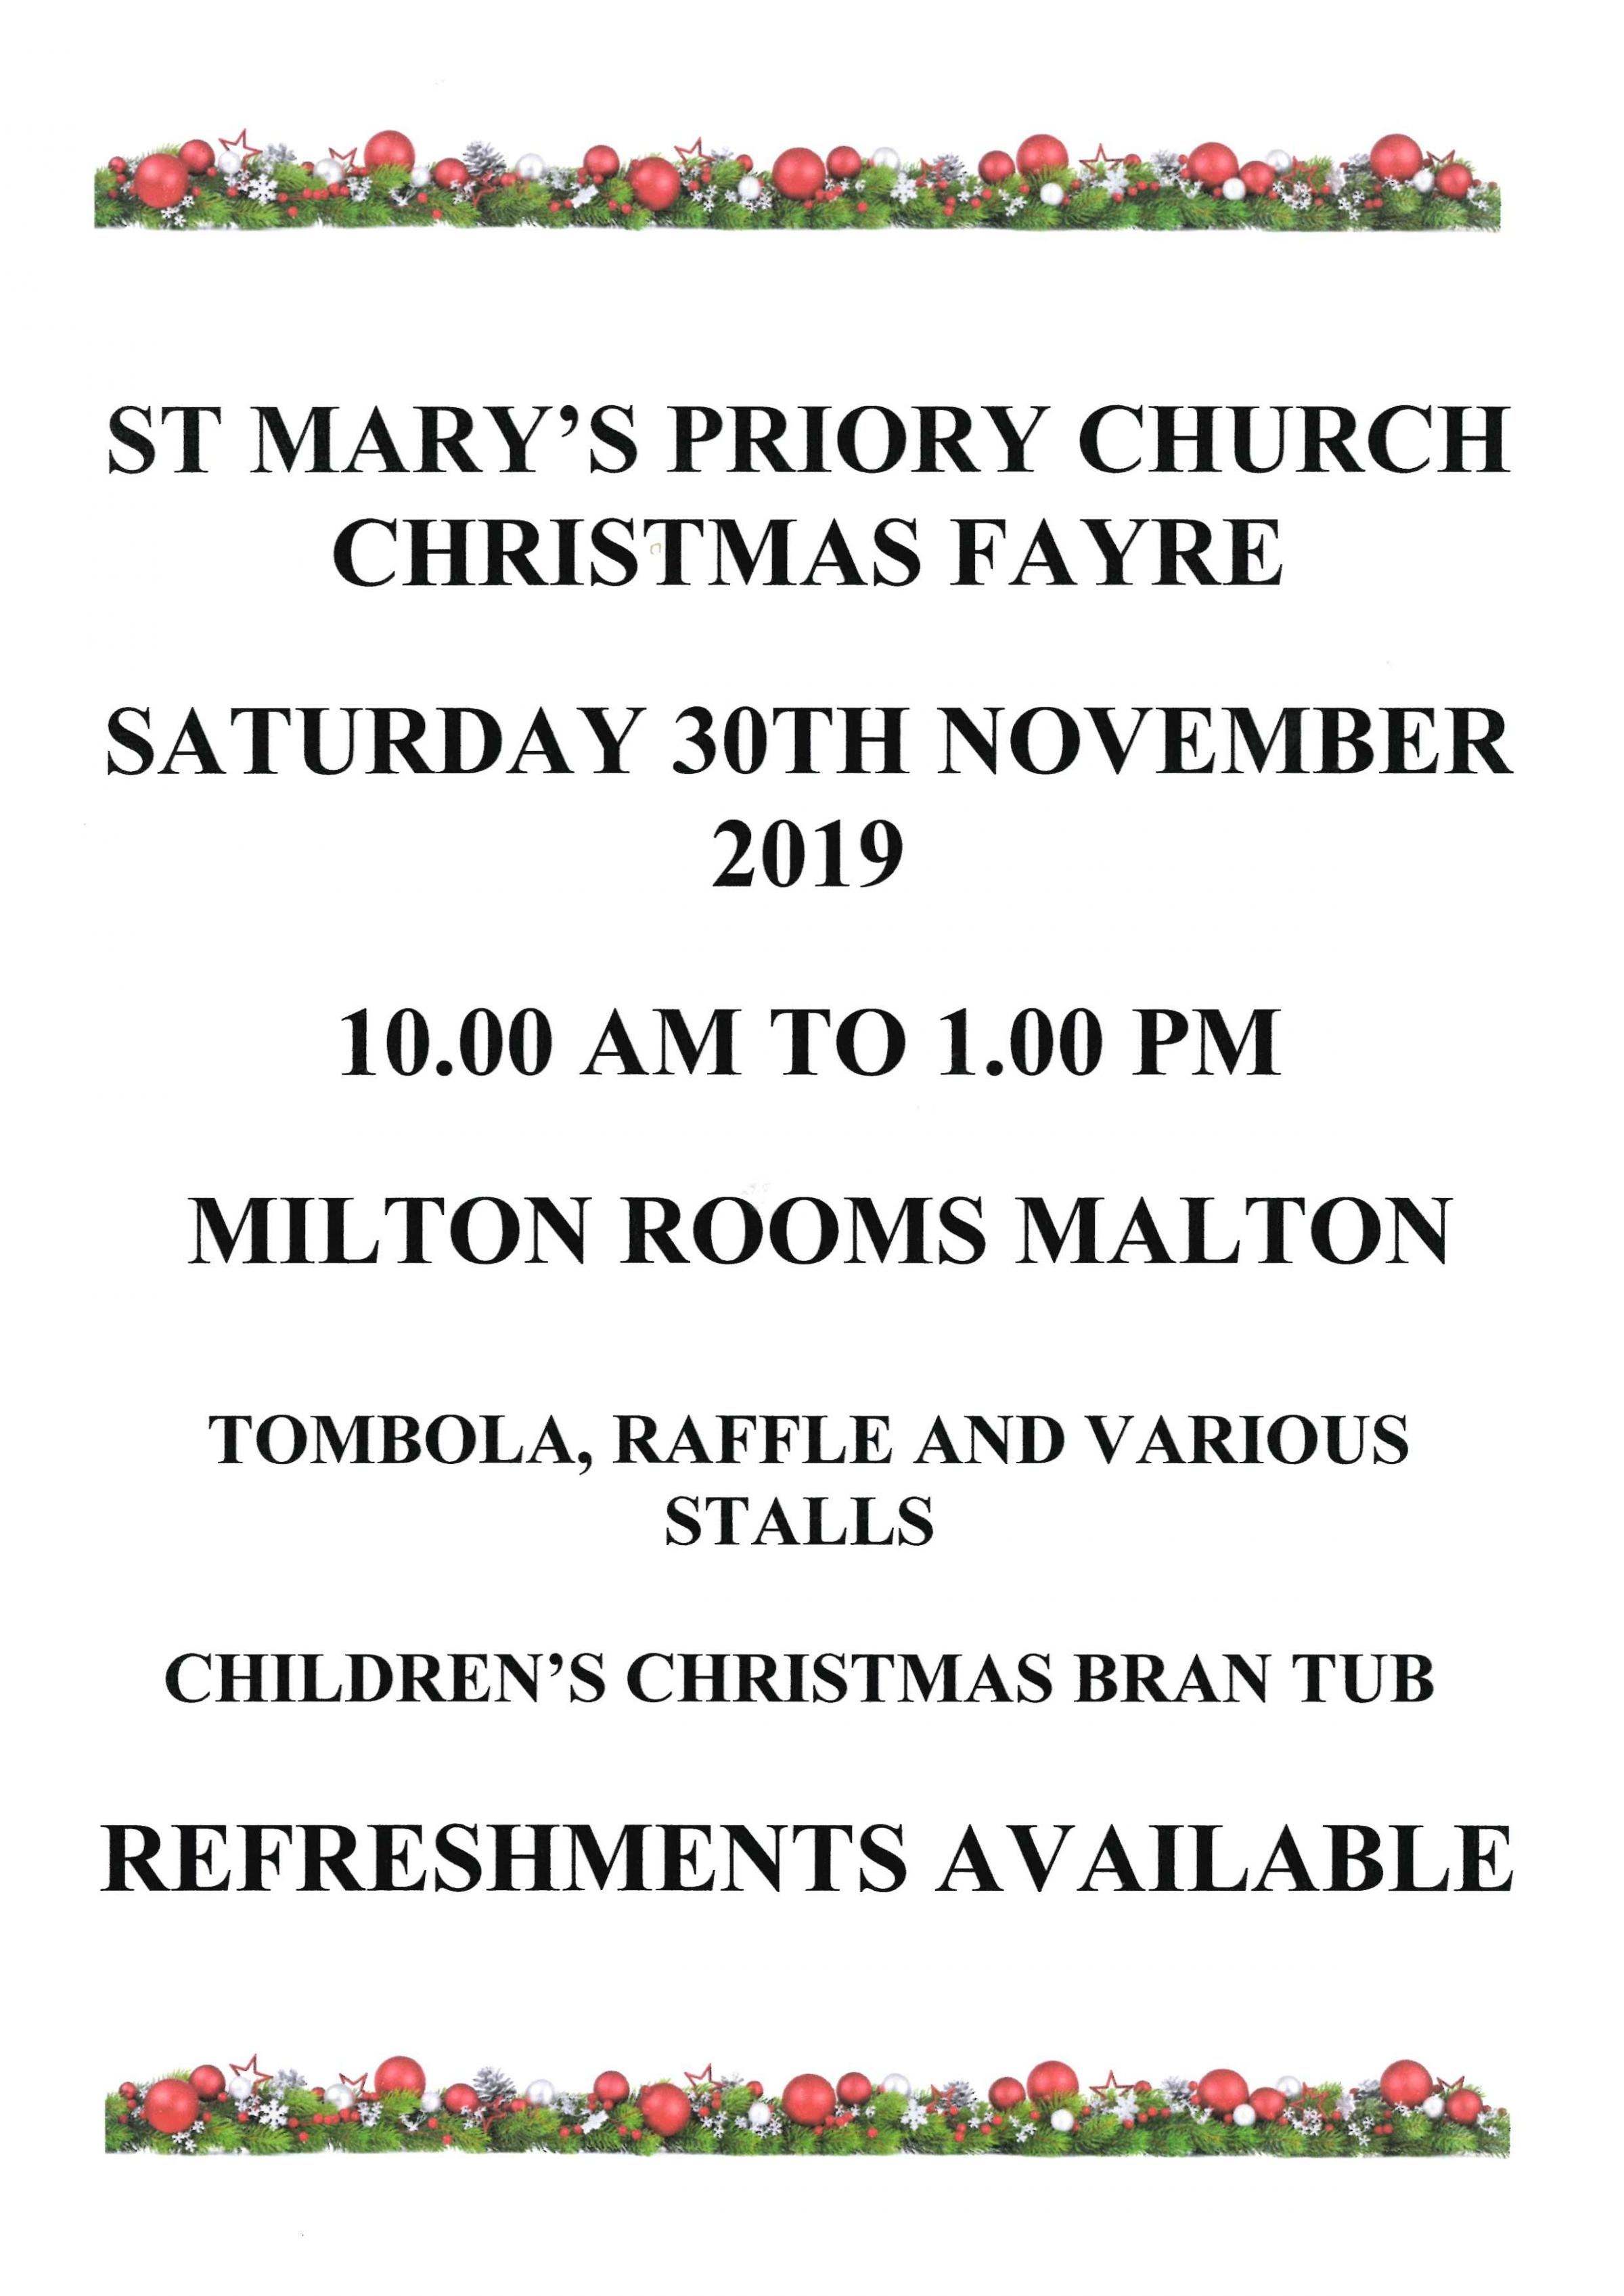 St Mary's Priory Christmas Fayre